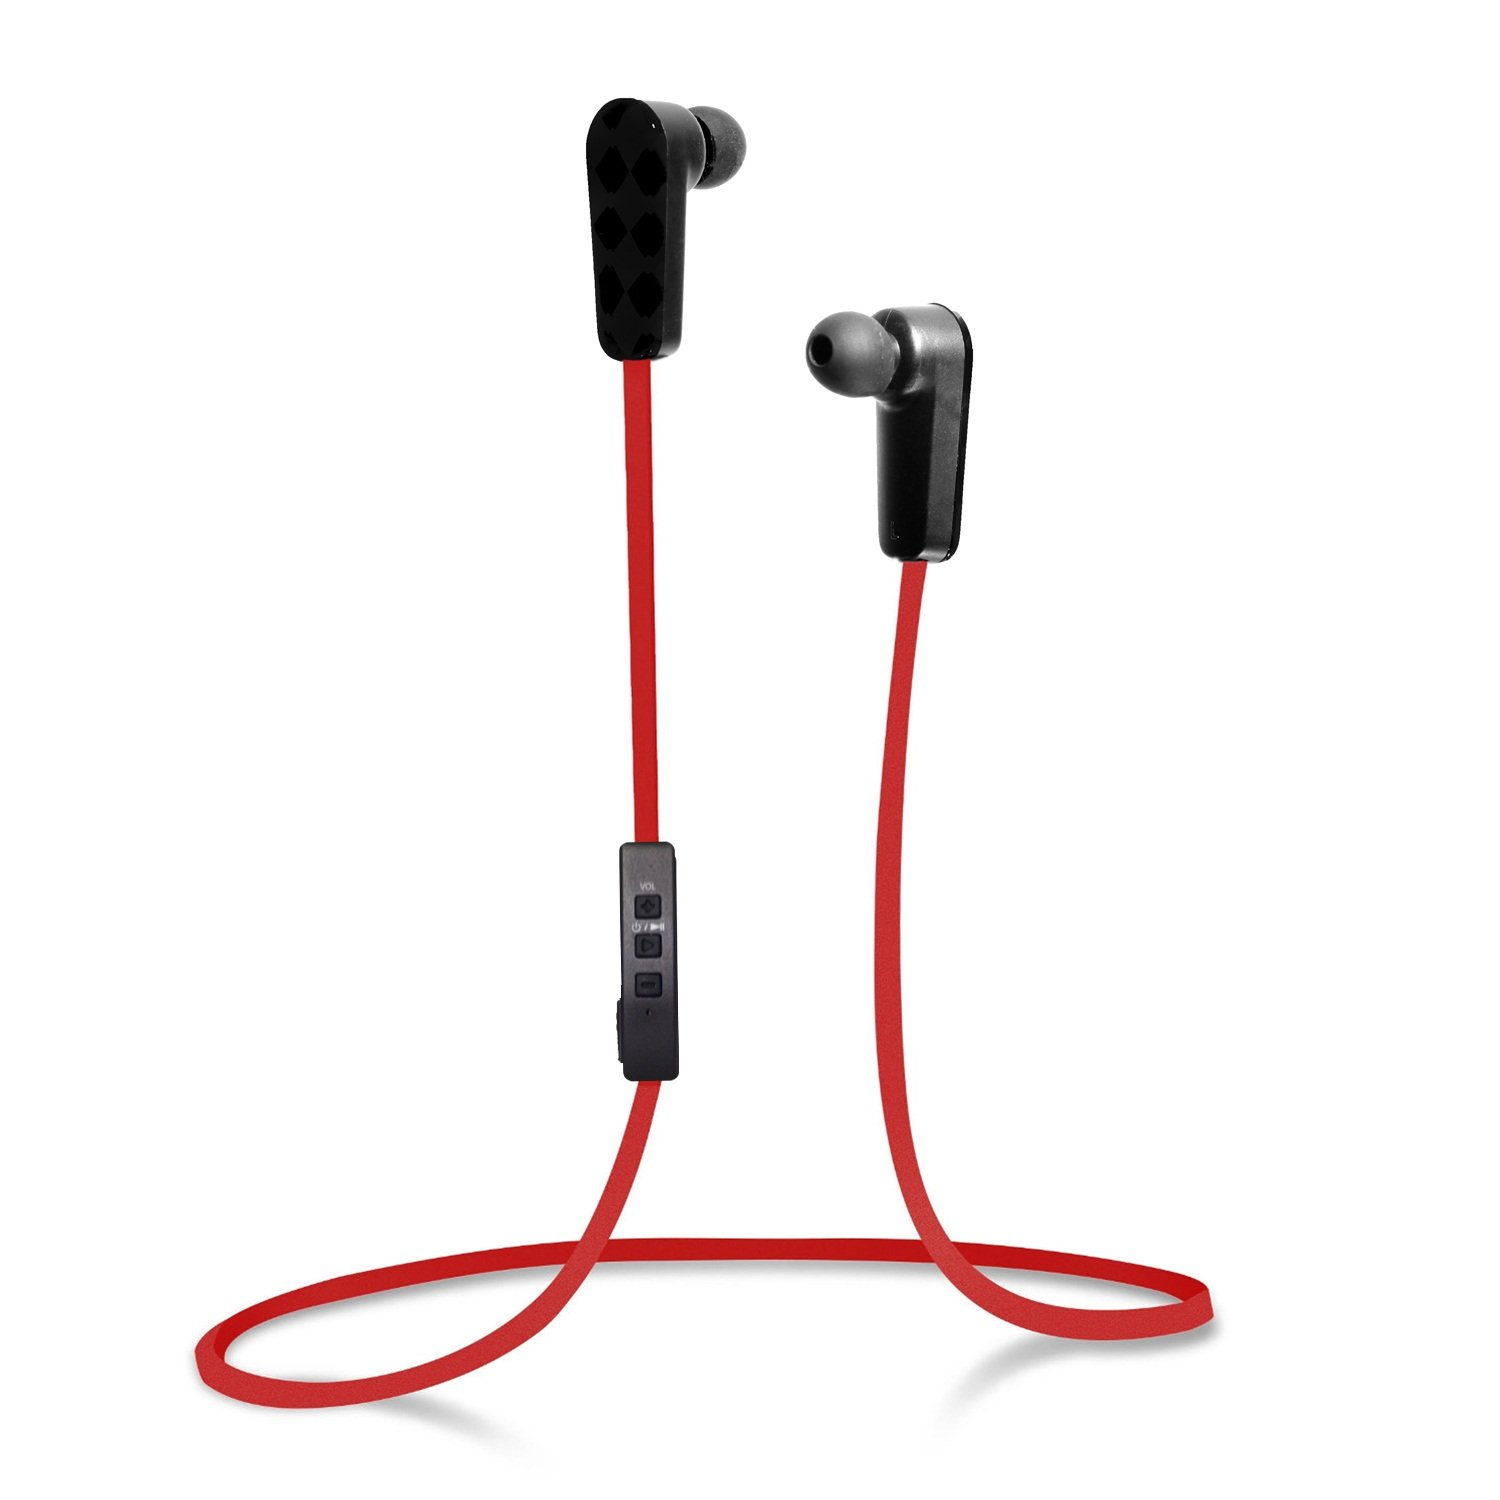 Jarv NMotion Sport Wireless Bluetooth 4.0 Stereo Earbuds/Headphones with In-Line Microphone , Red